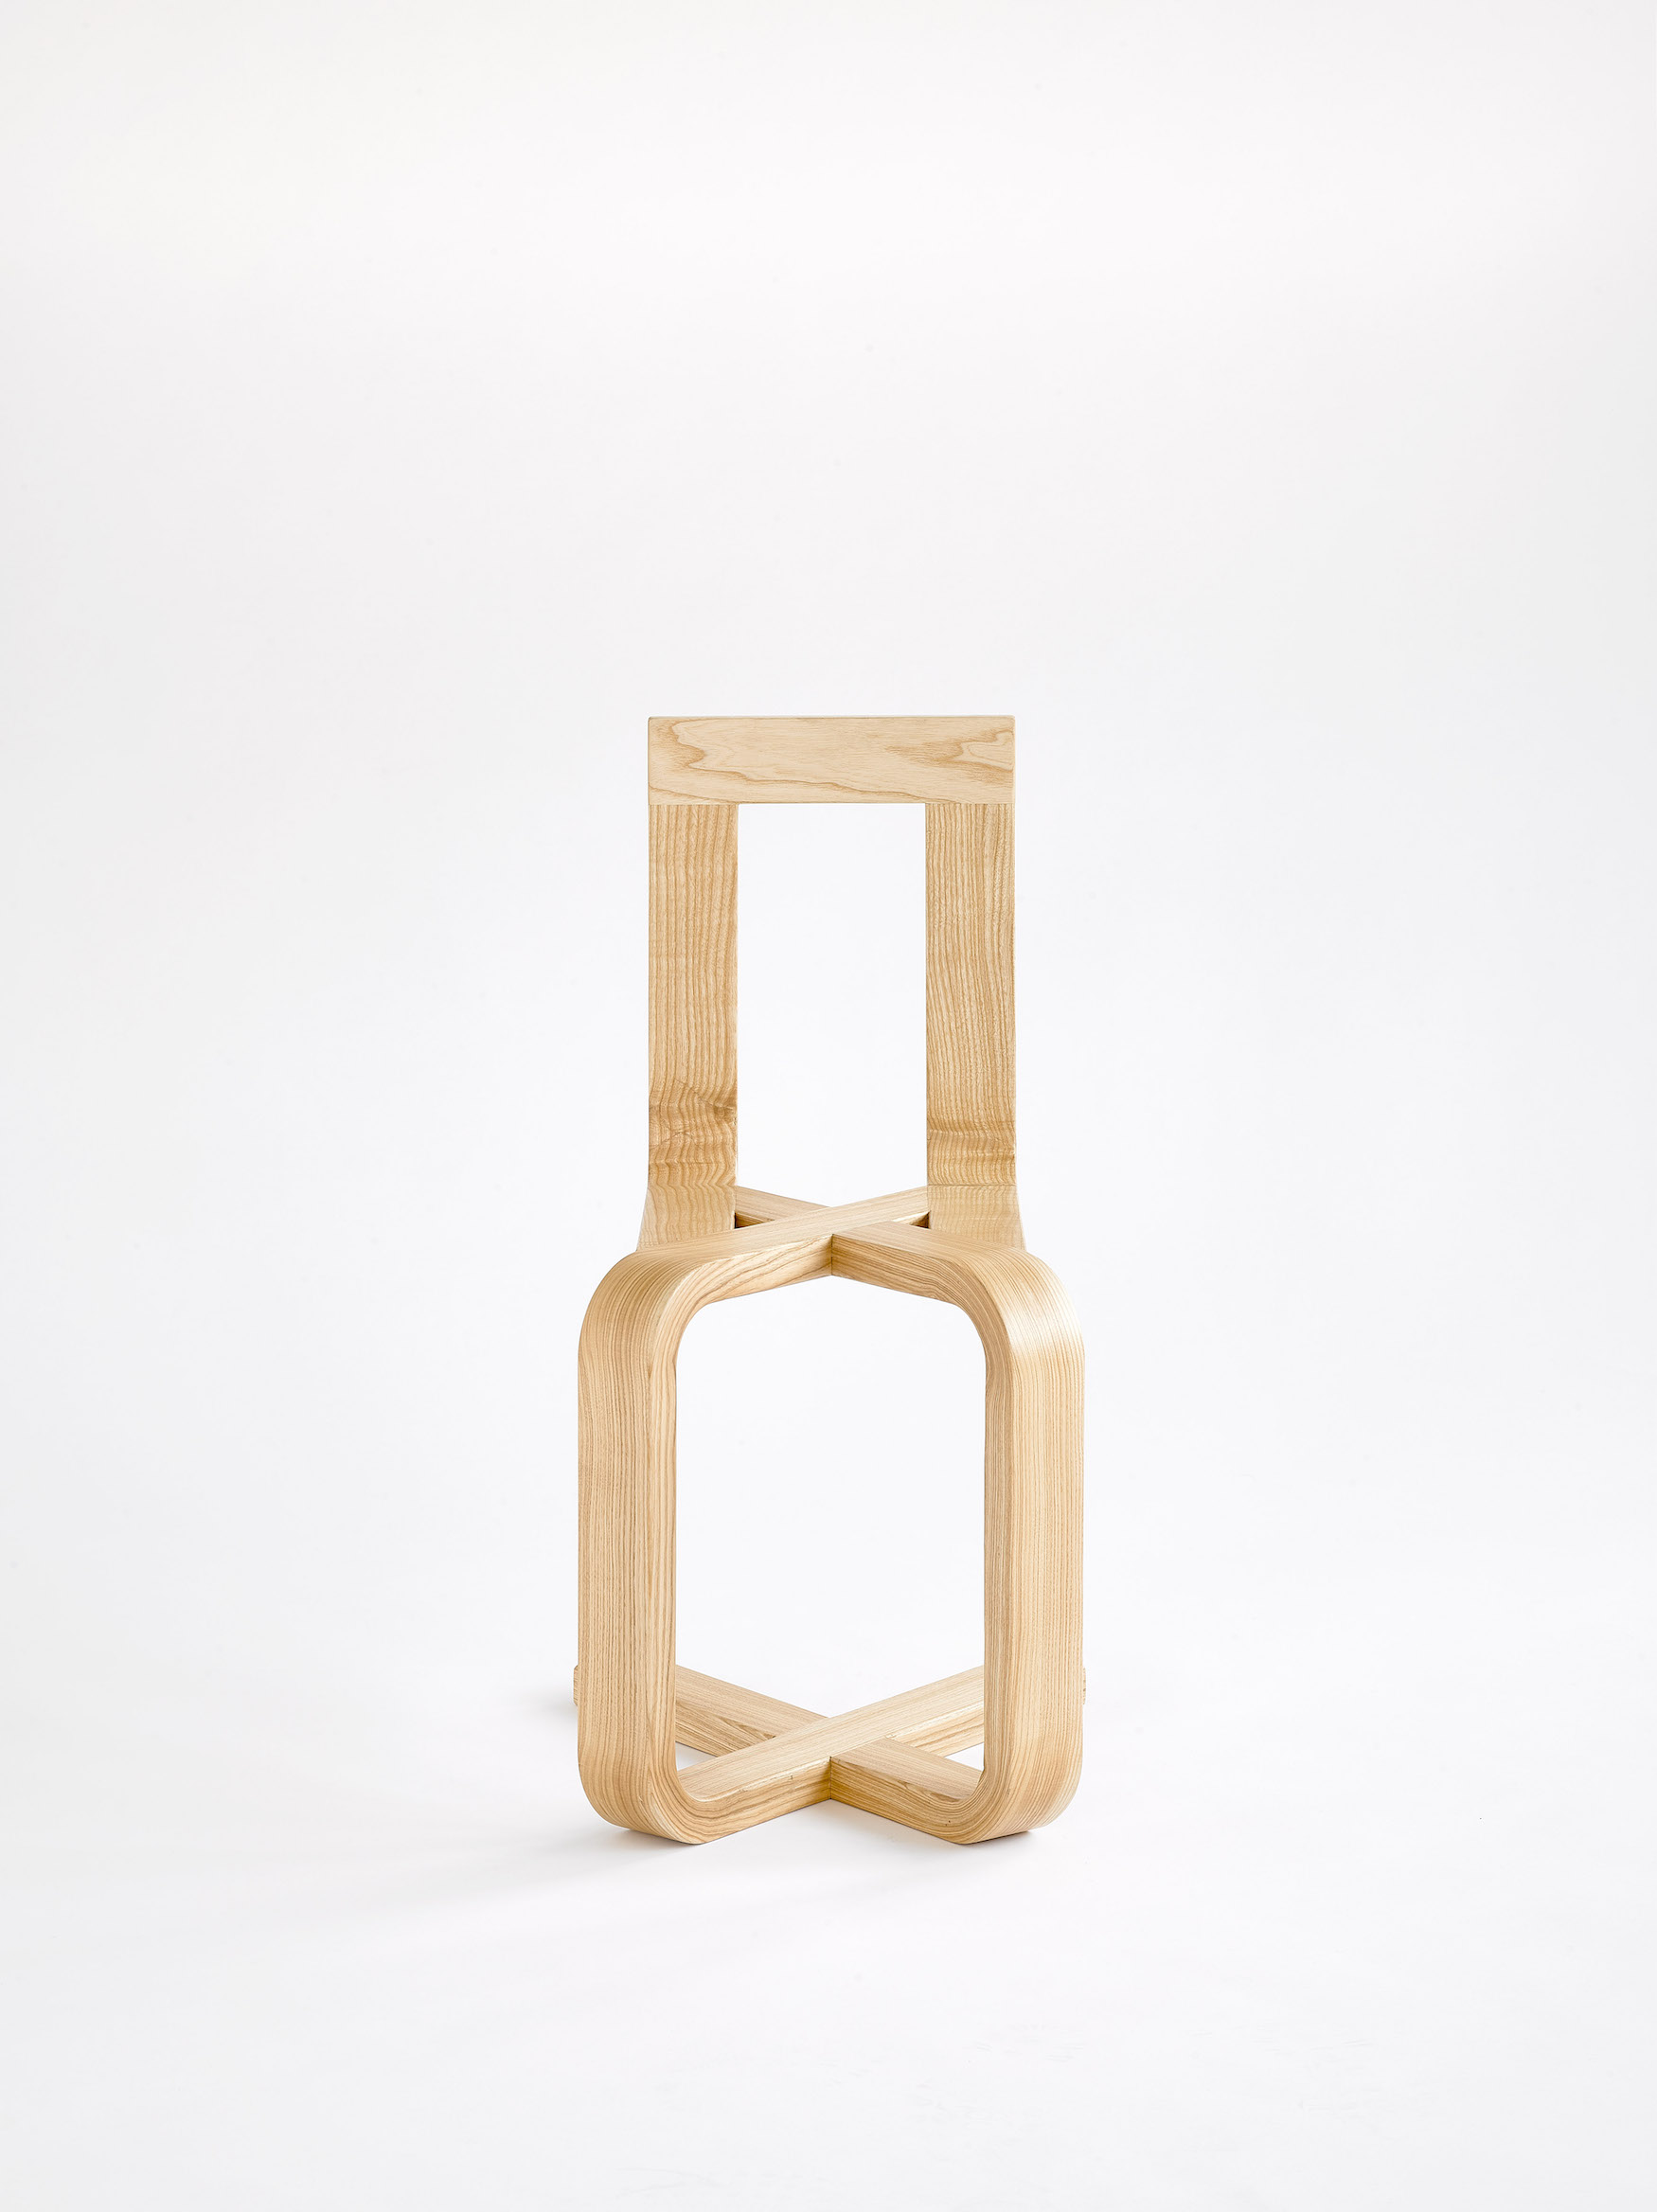 LCX Chair by Florian Hauswirth for Winkler